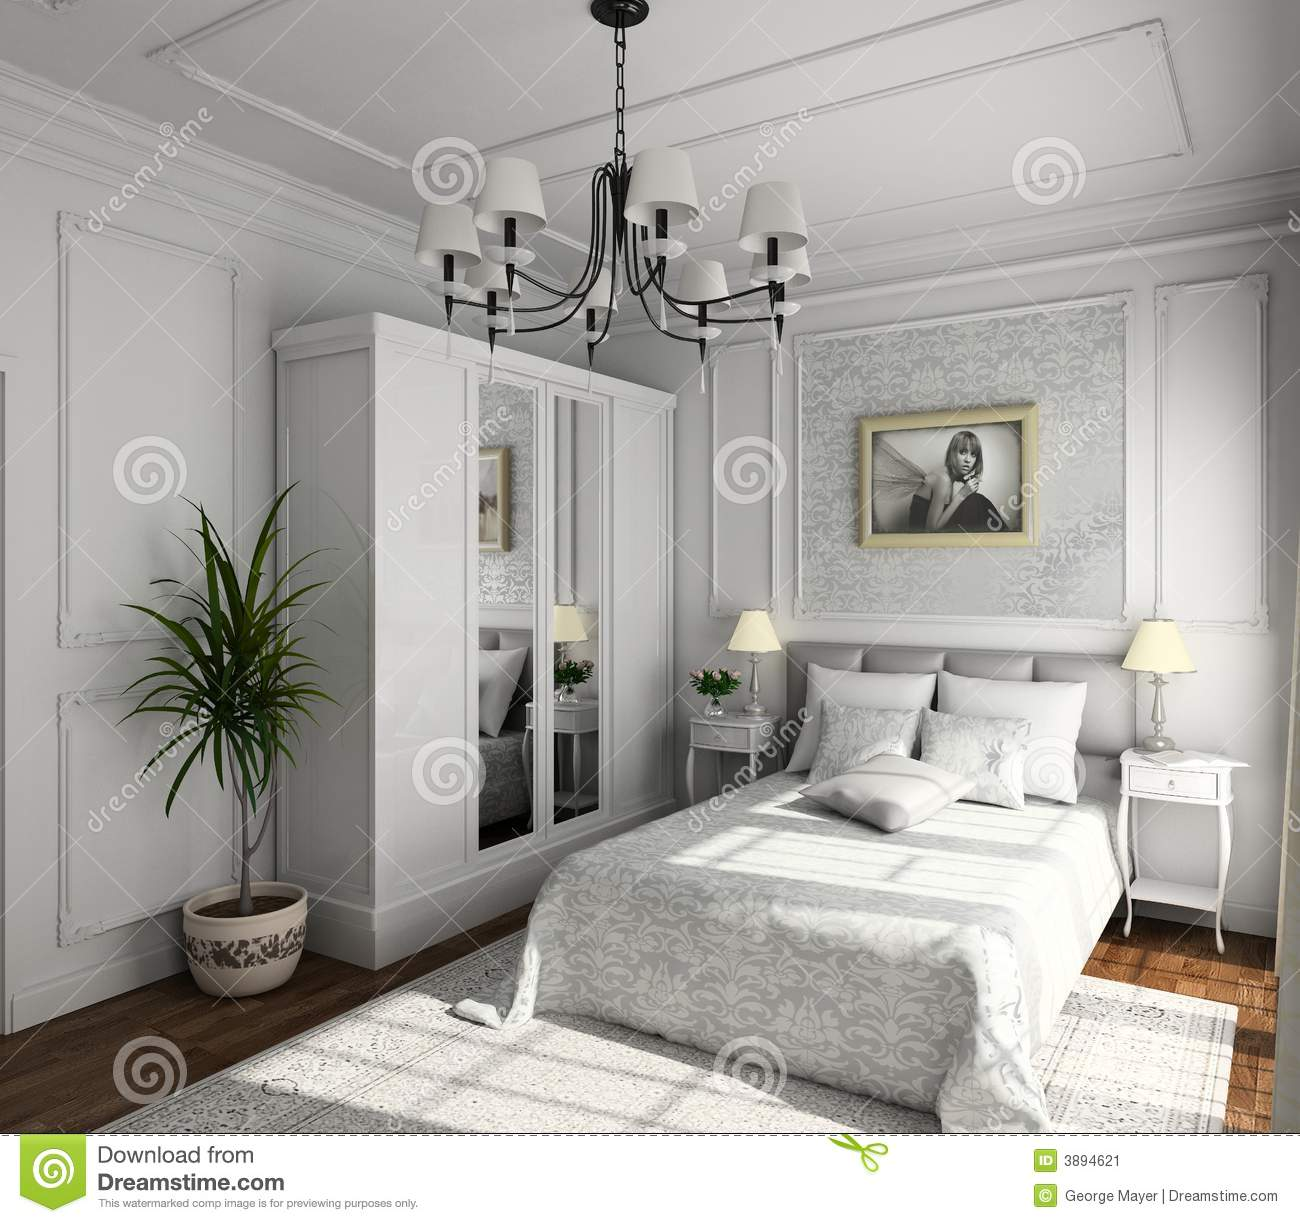 Classic design of interior stock image image of bedroom for Image of interior design